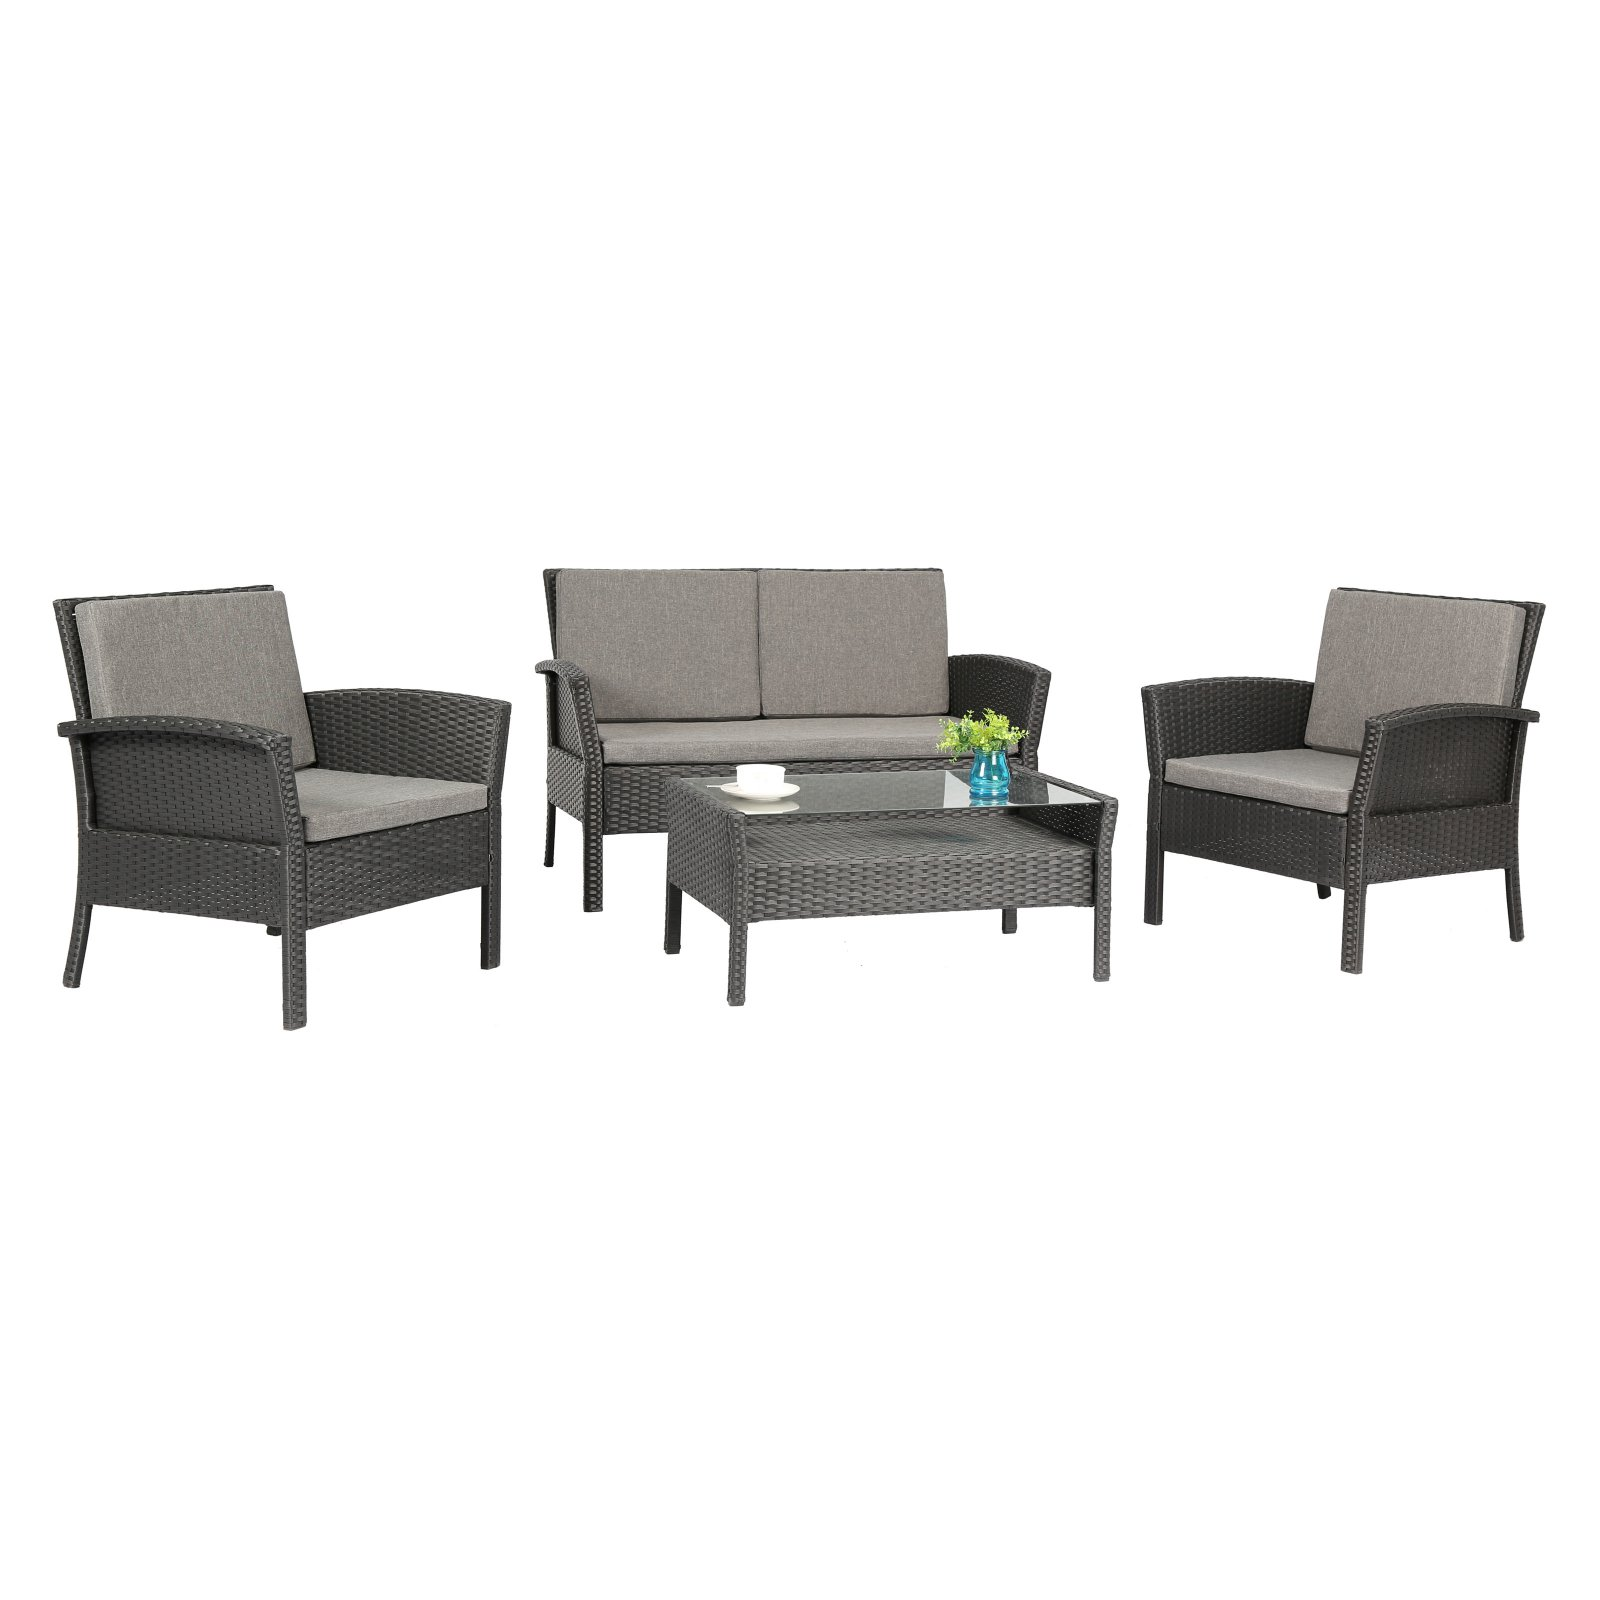 Baner Garden Outdoor Furniture Complete Patio PE Wicker Rattan Garden Set, Black, 4-Pieces by